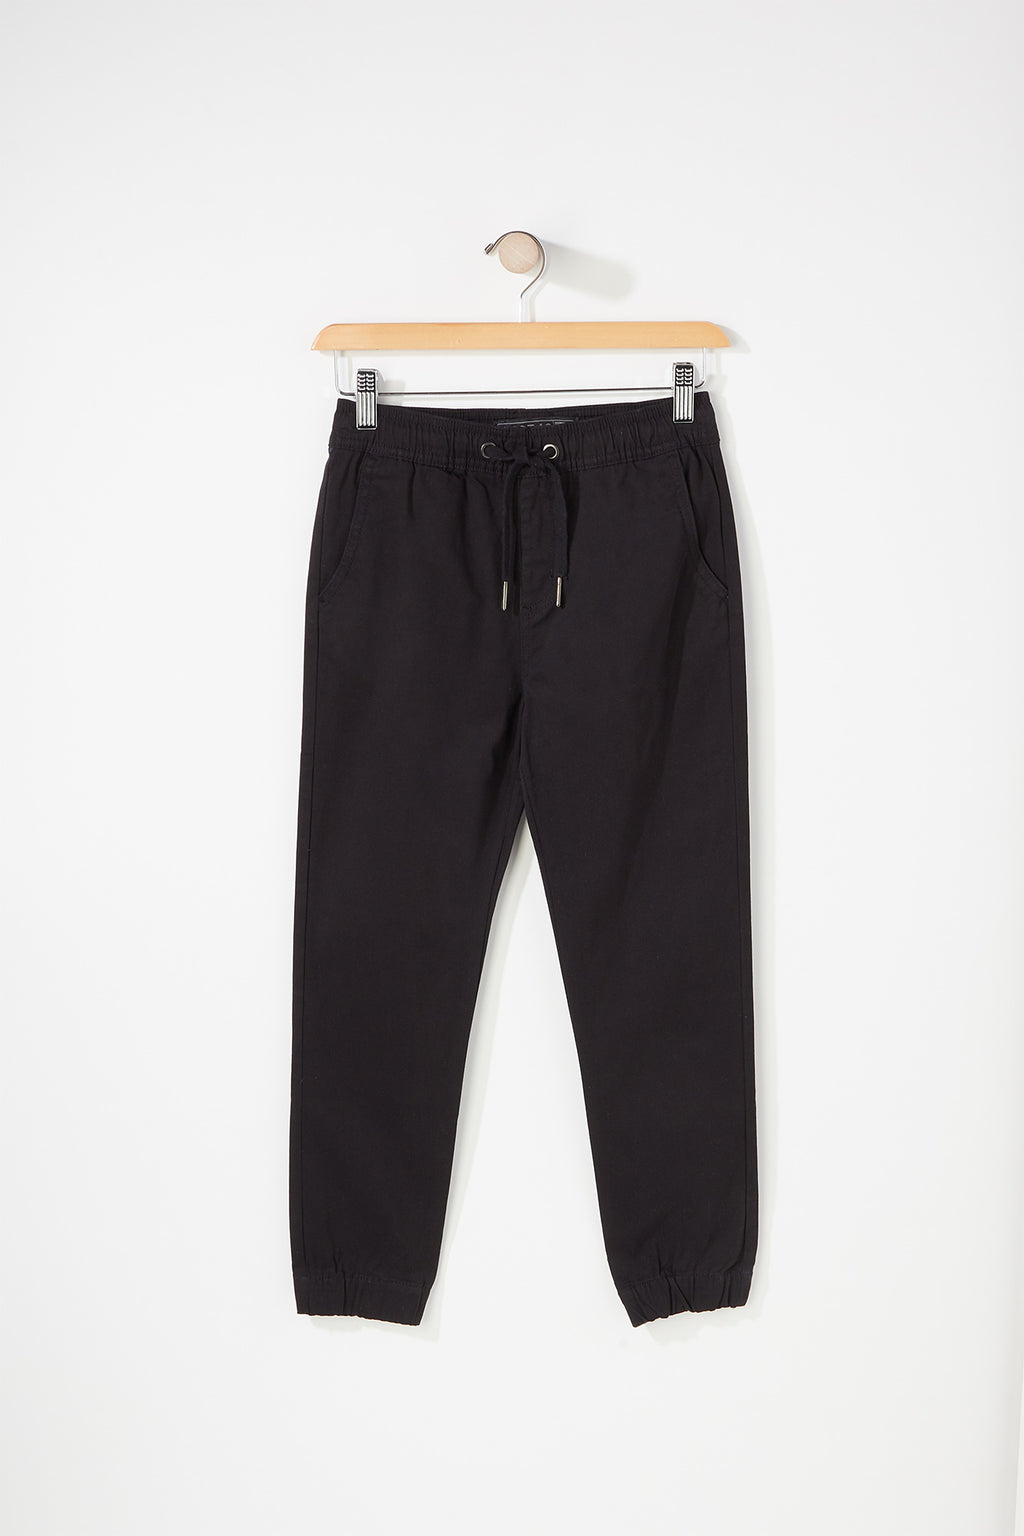 West49 Boys Classic Twill Jogger